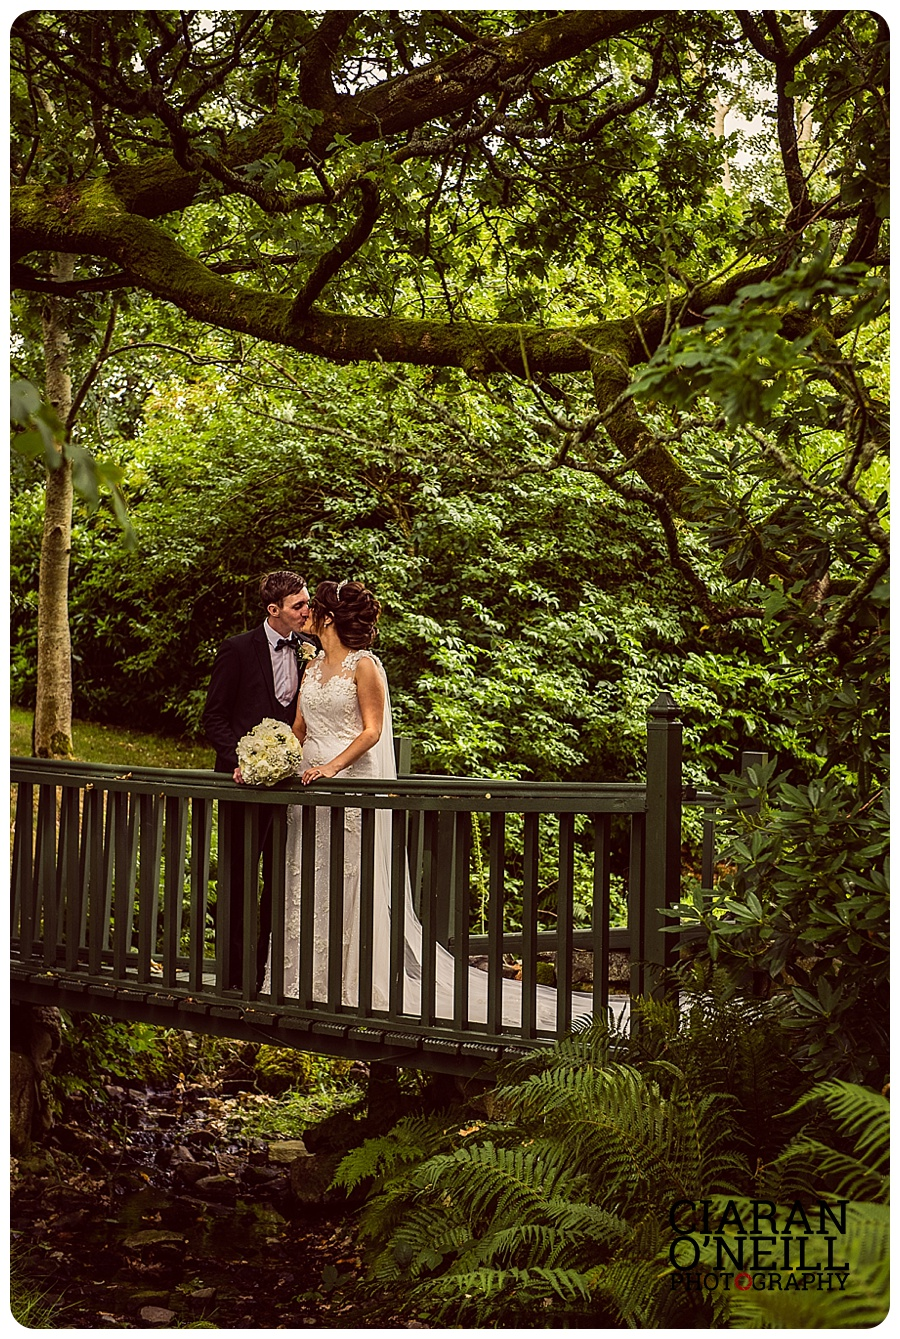 Emma & Turlough wedding at Carrickdale Hotel by Ciaran O'Neill Photography